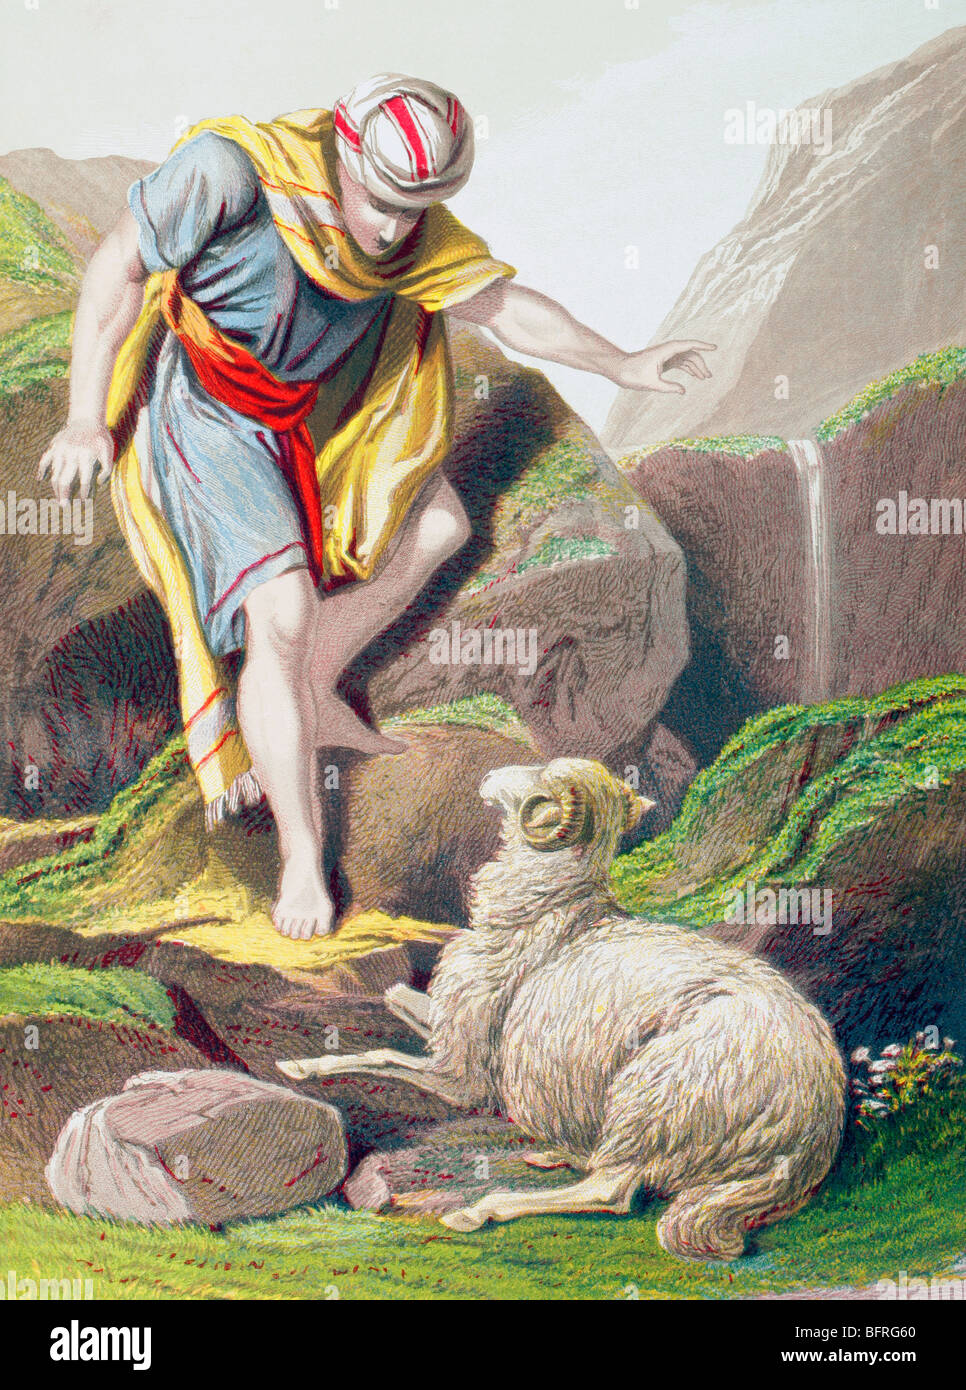 The parable of the lost sheep. - Stock Image